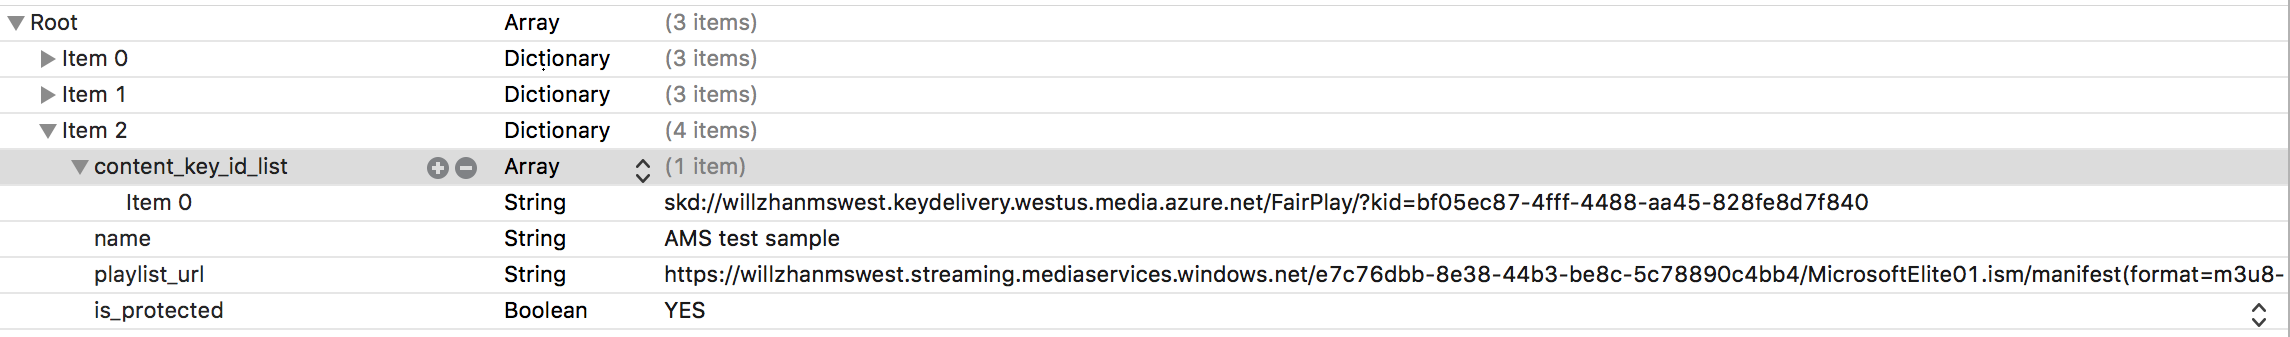 Protect HLS content with offline Apple FairPlay - Azure | Microsoft Docs